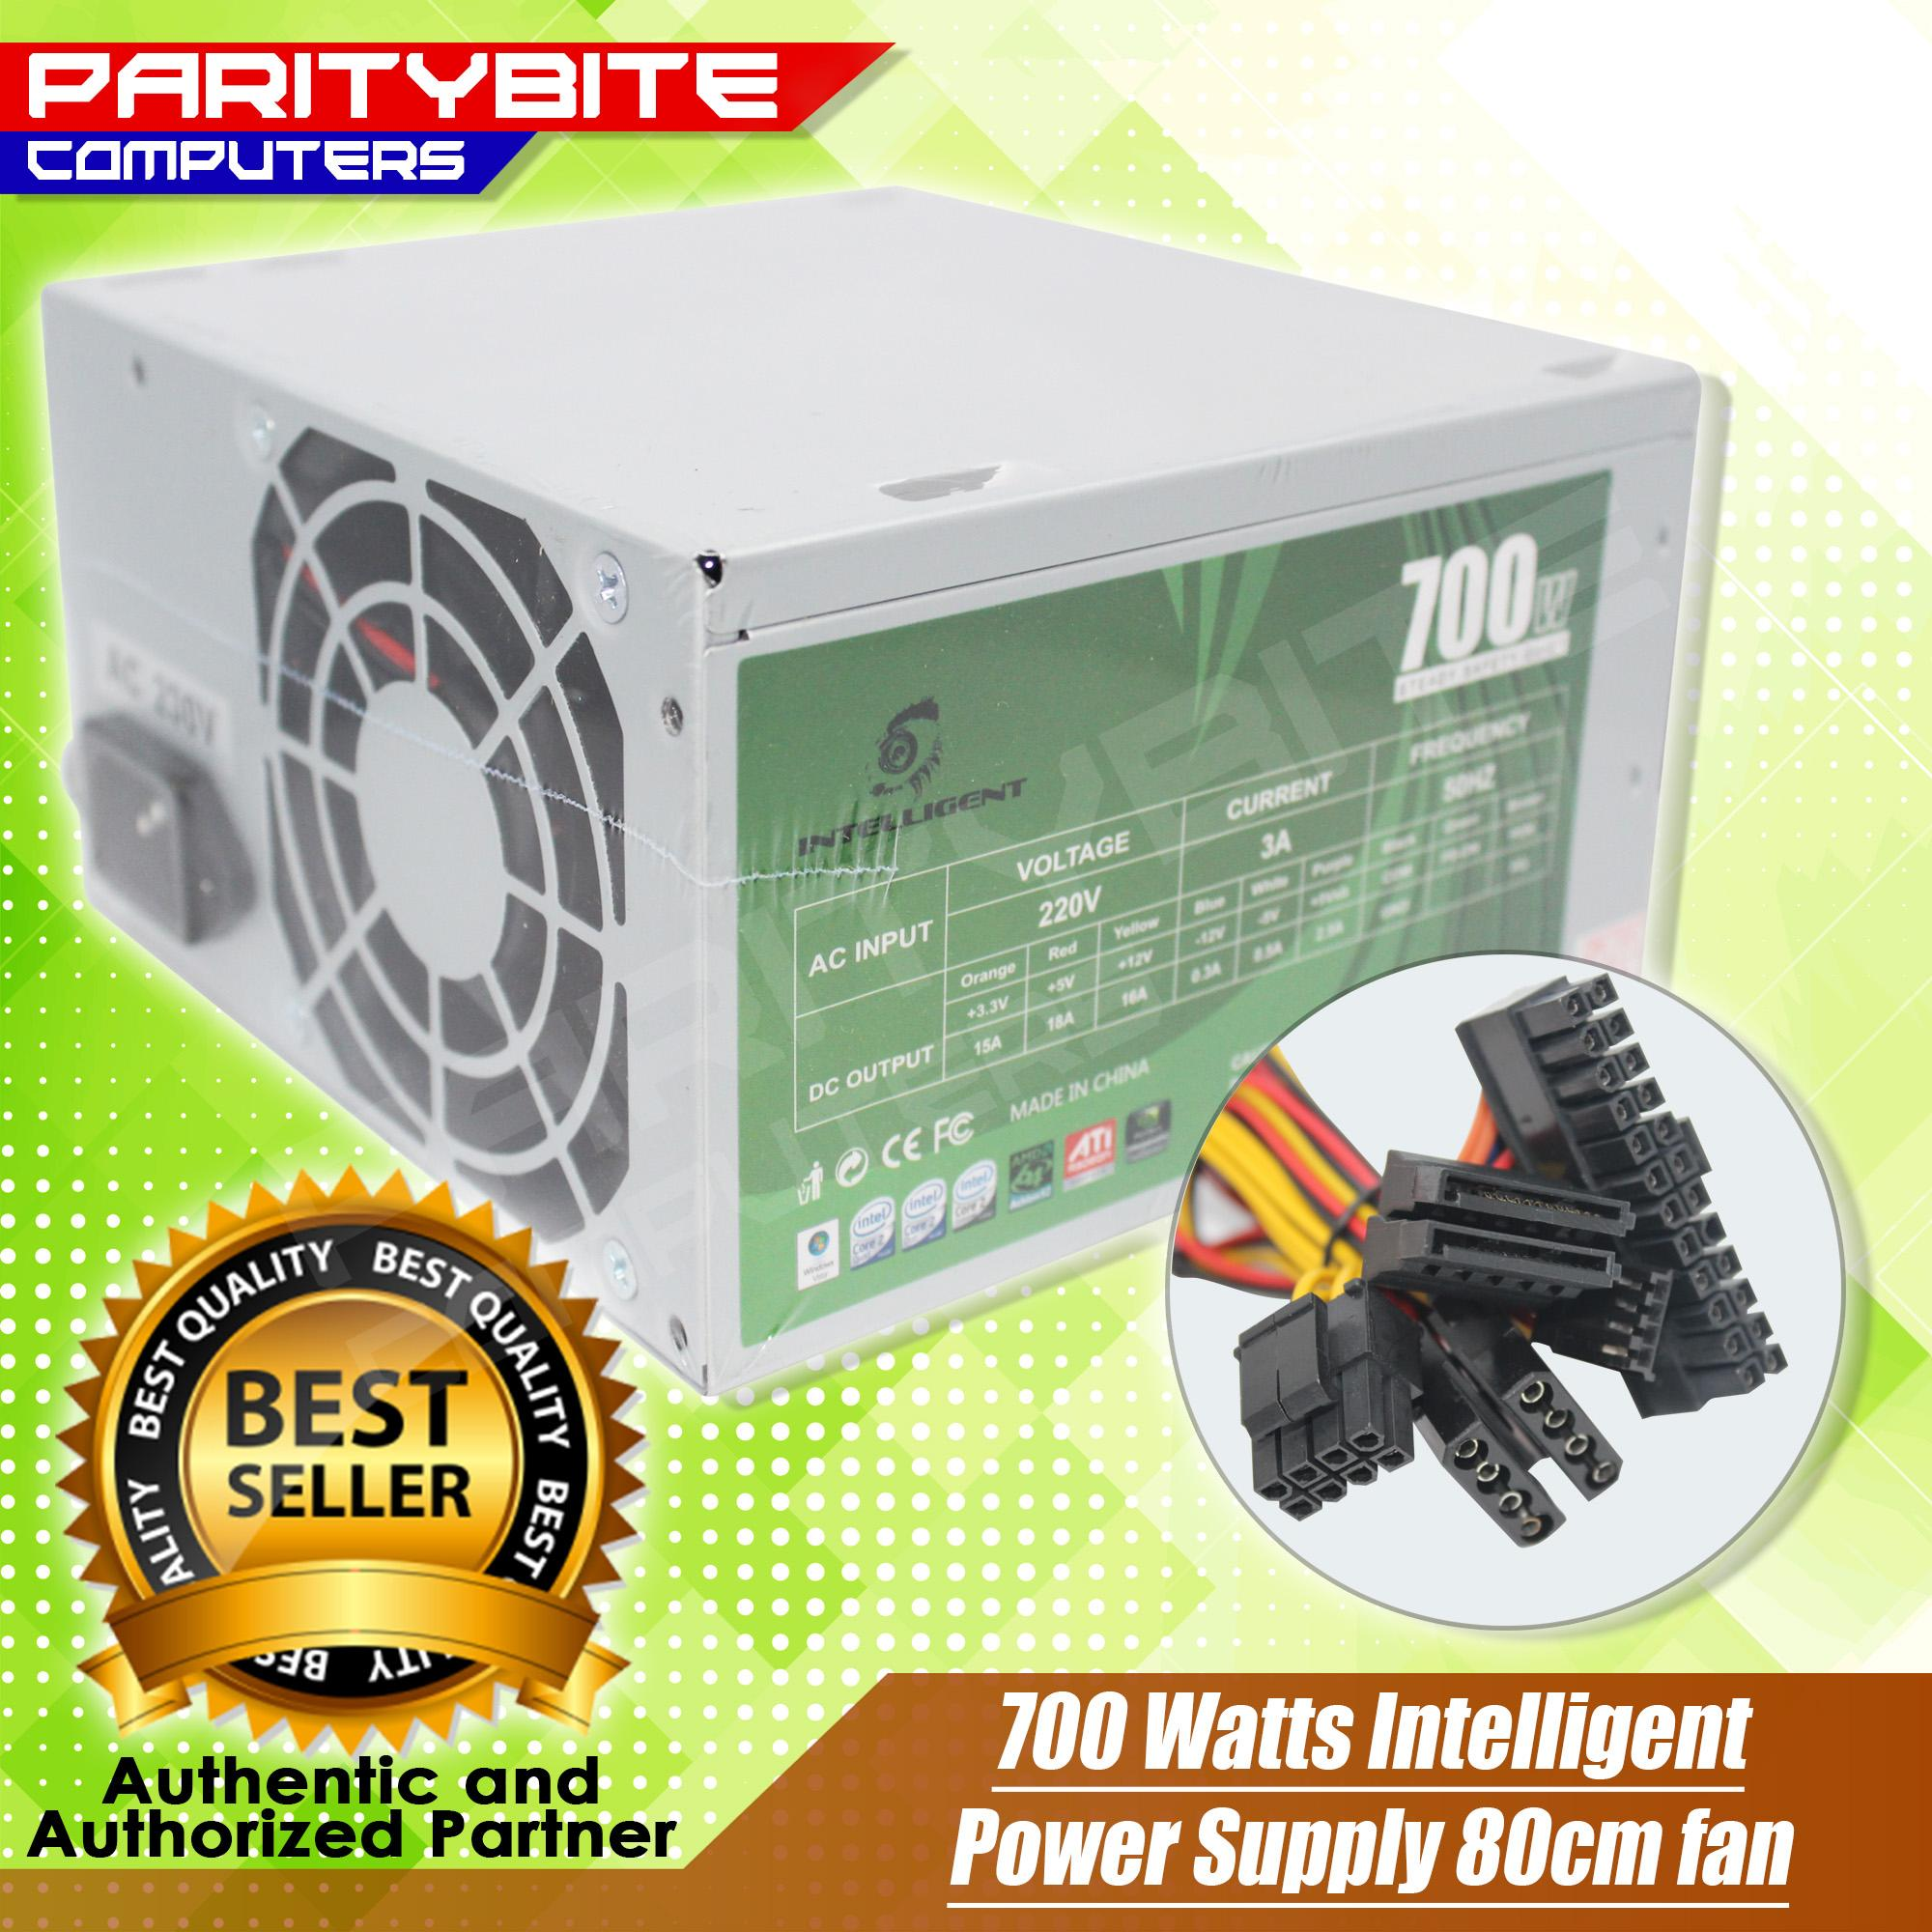 700 Watts Intelligent Power Supply 80cm Fan By Paritybite Computers.